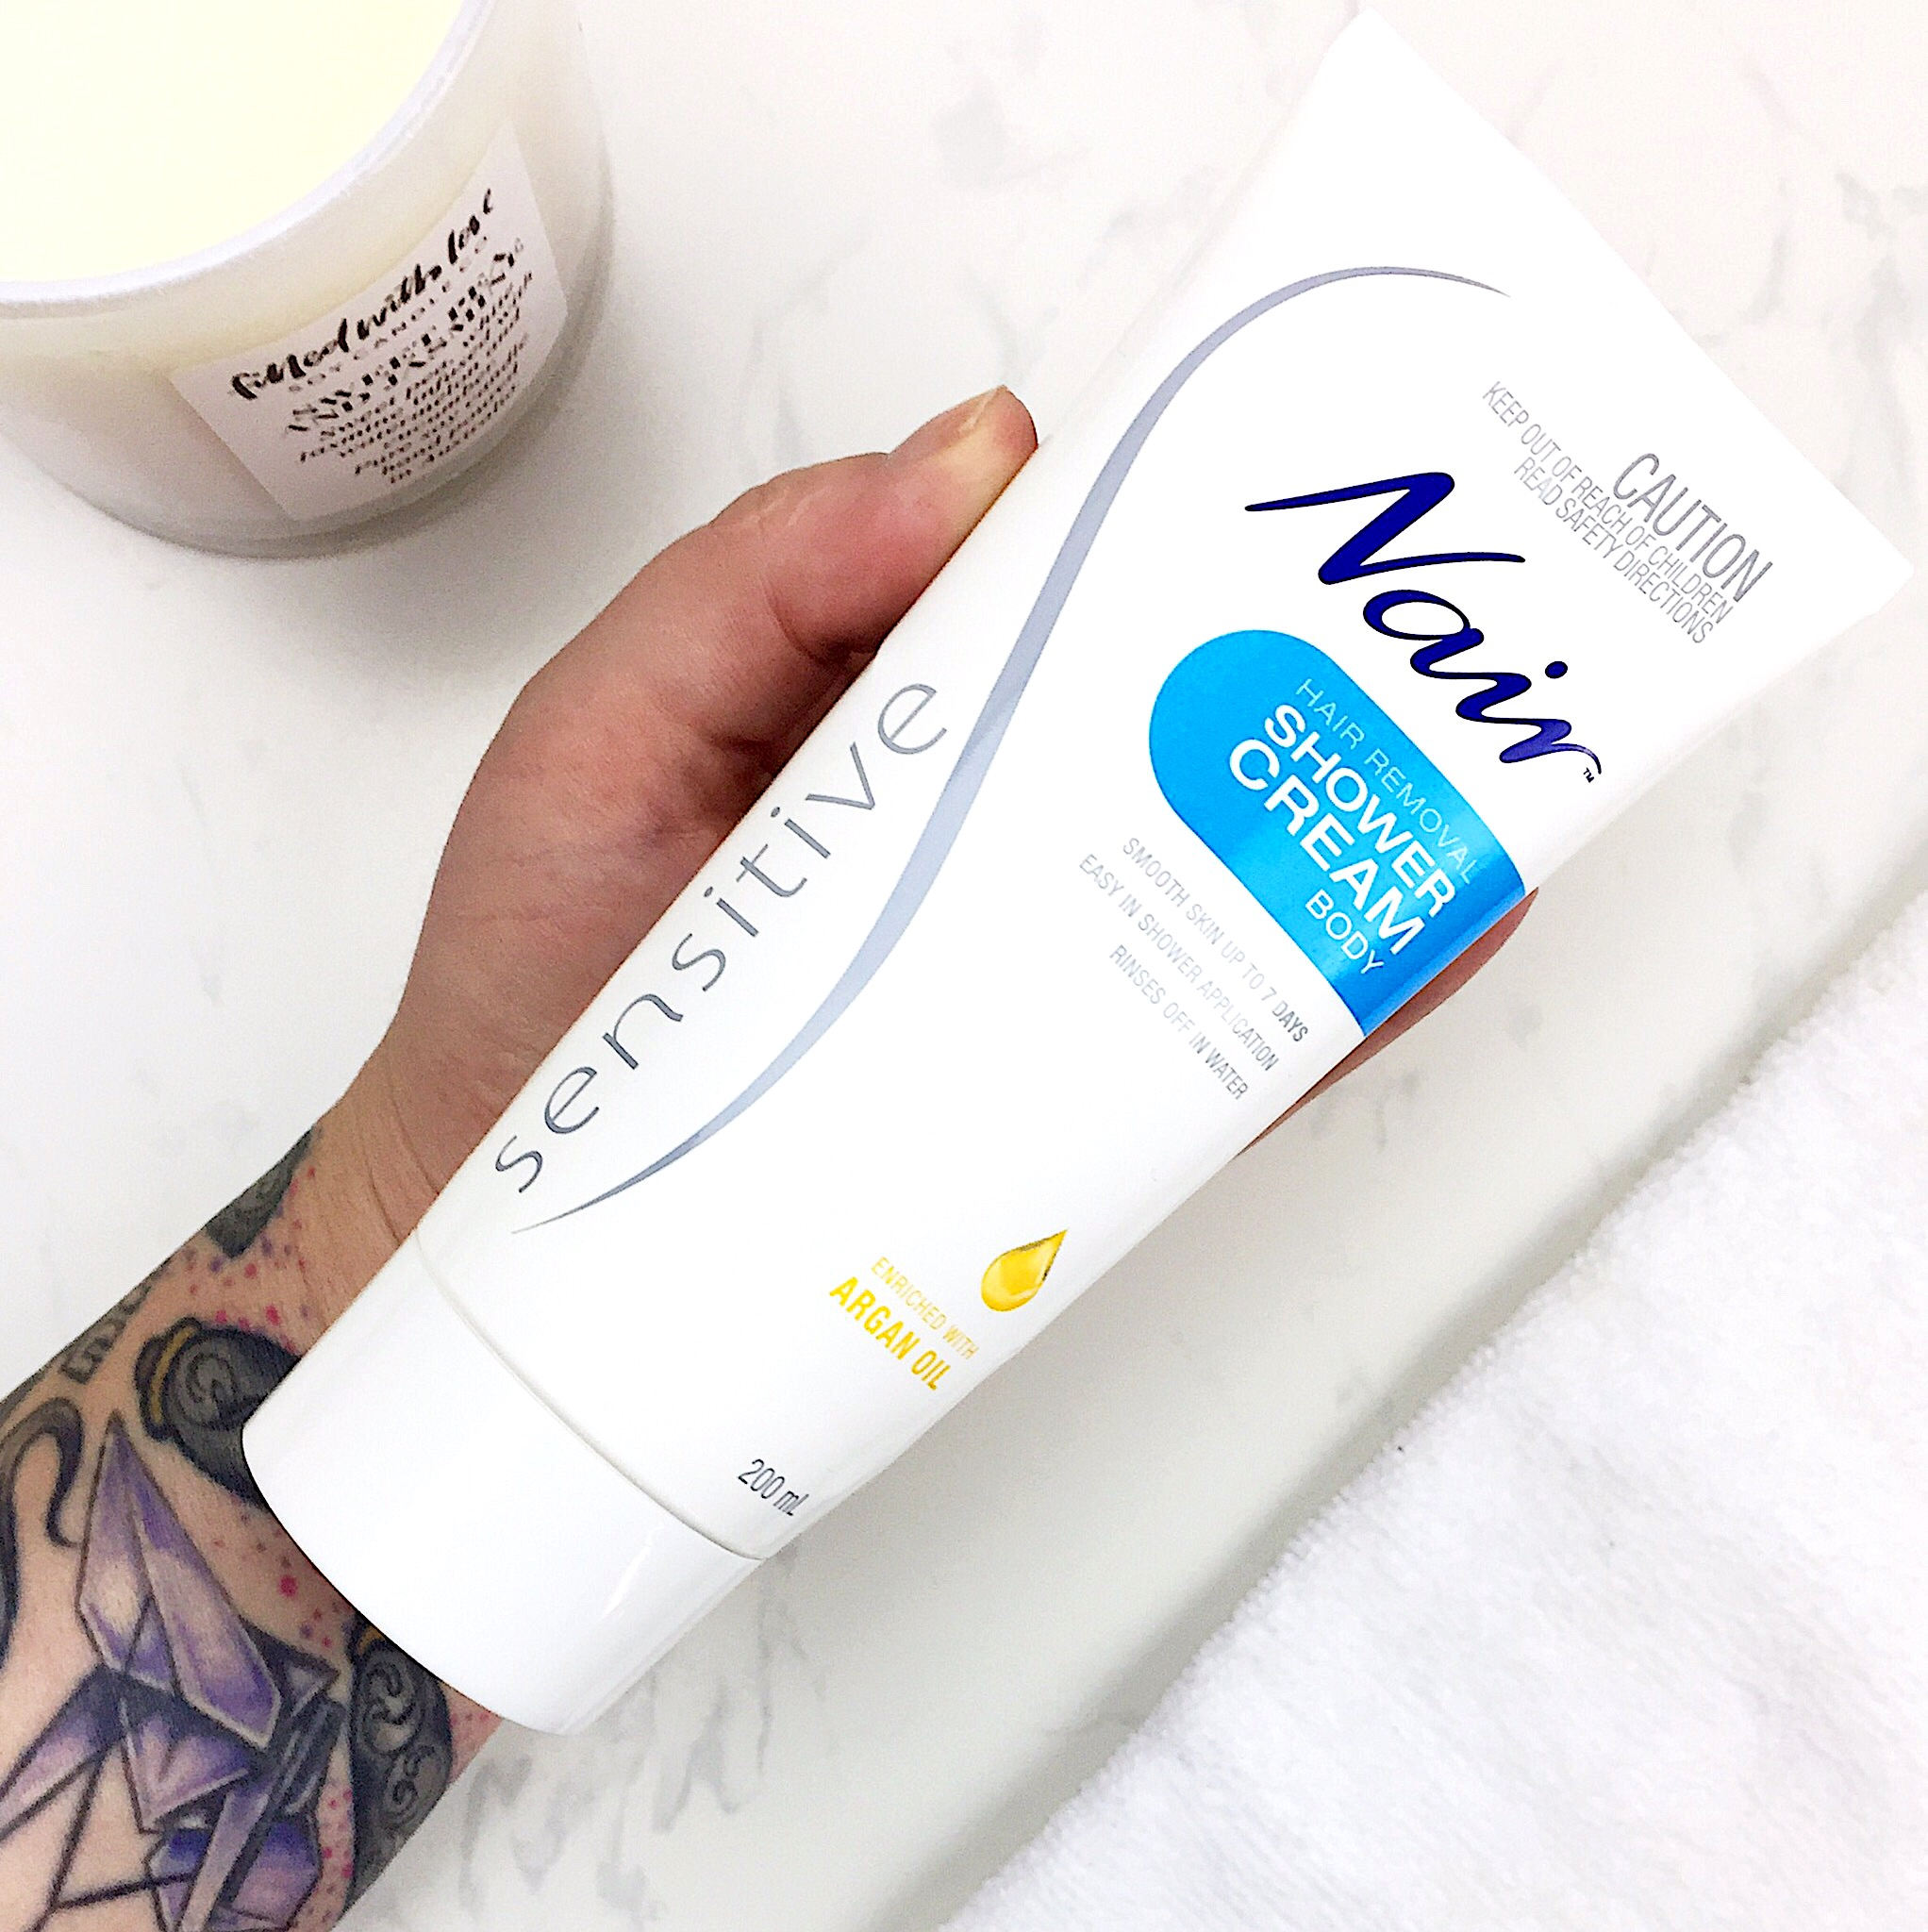 Nair Sensitive Hair Removal Shower Cream Review